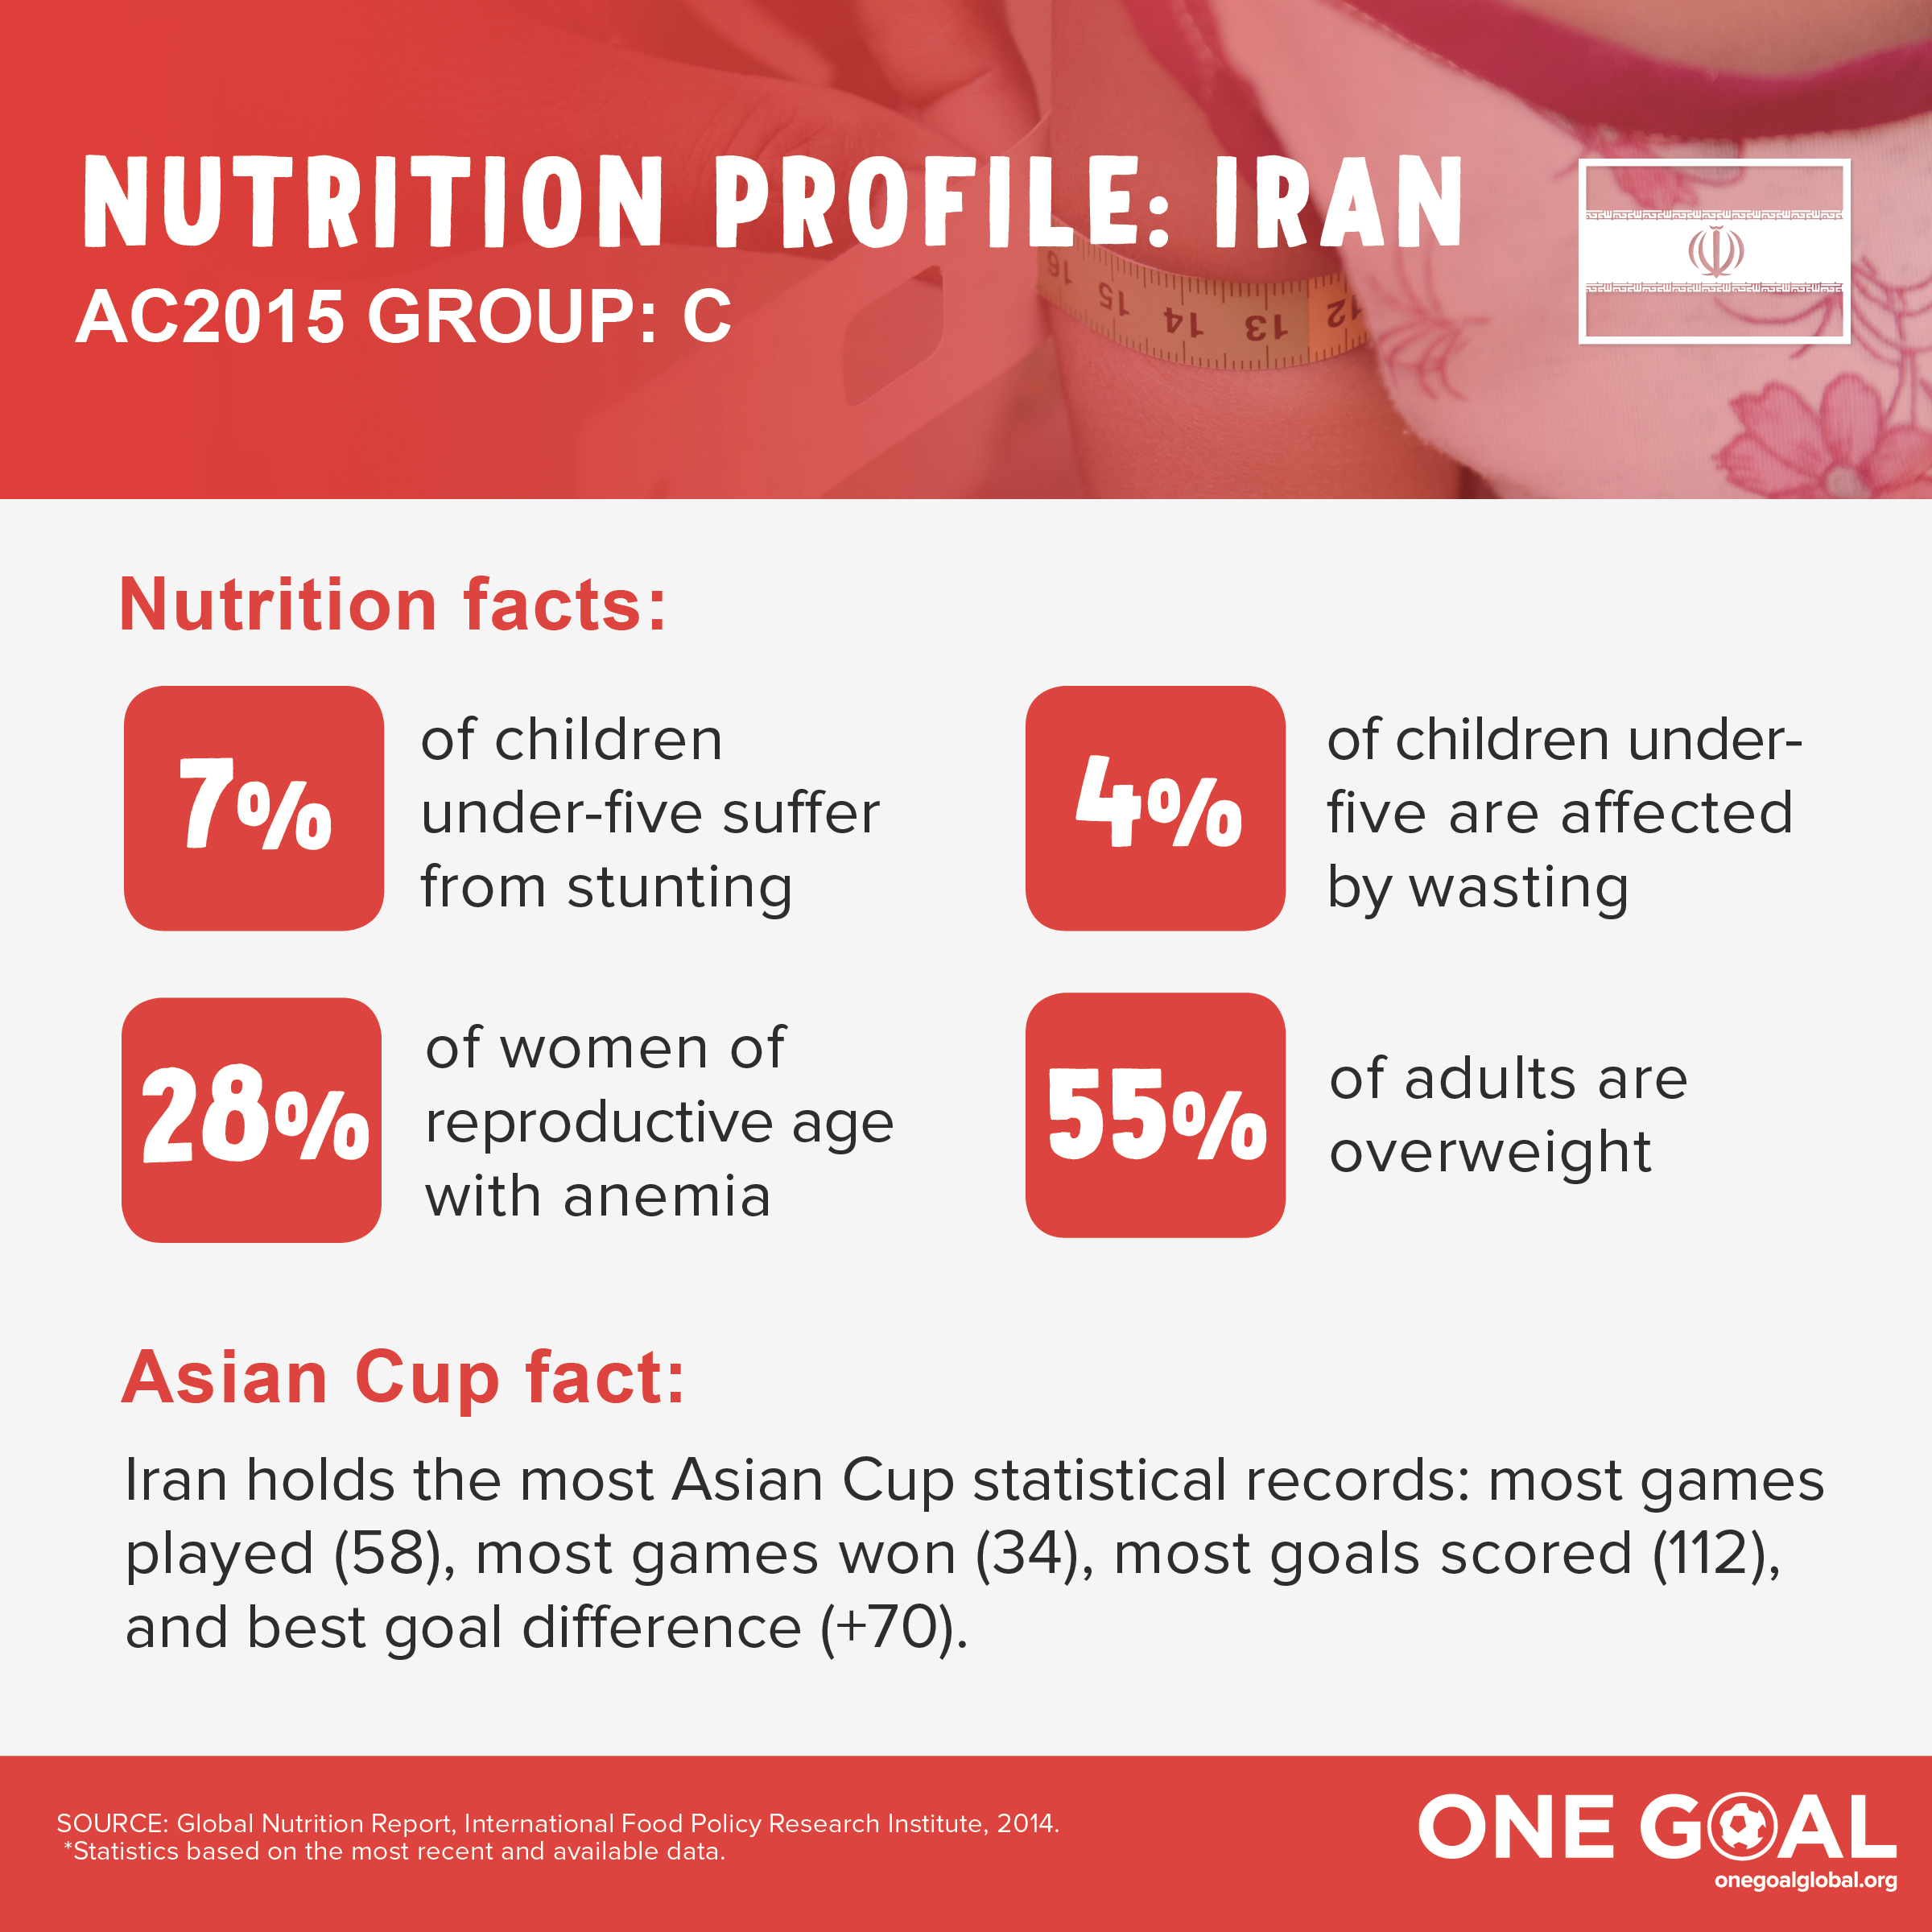 GroupC_nutritionprofile_Iran.jpg